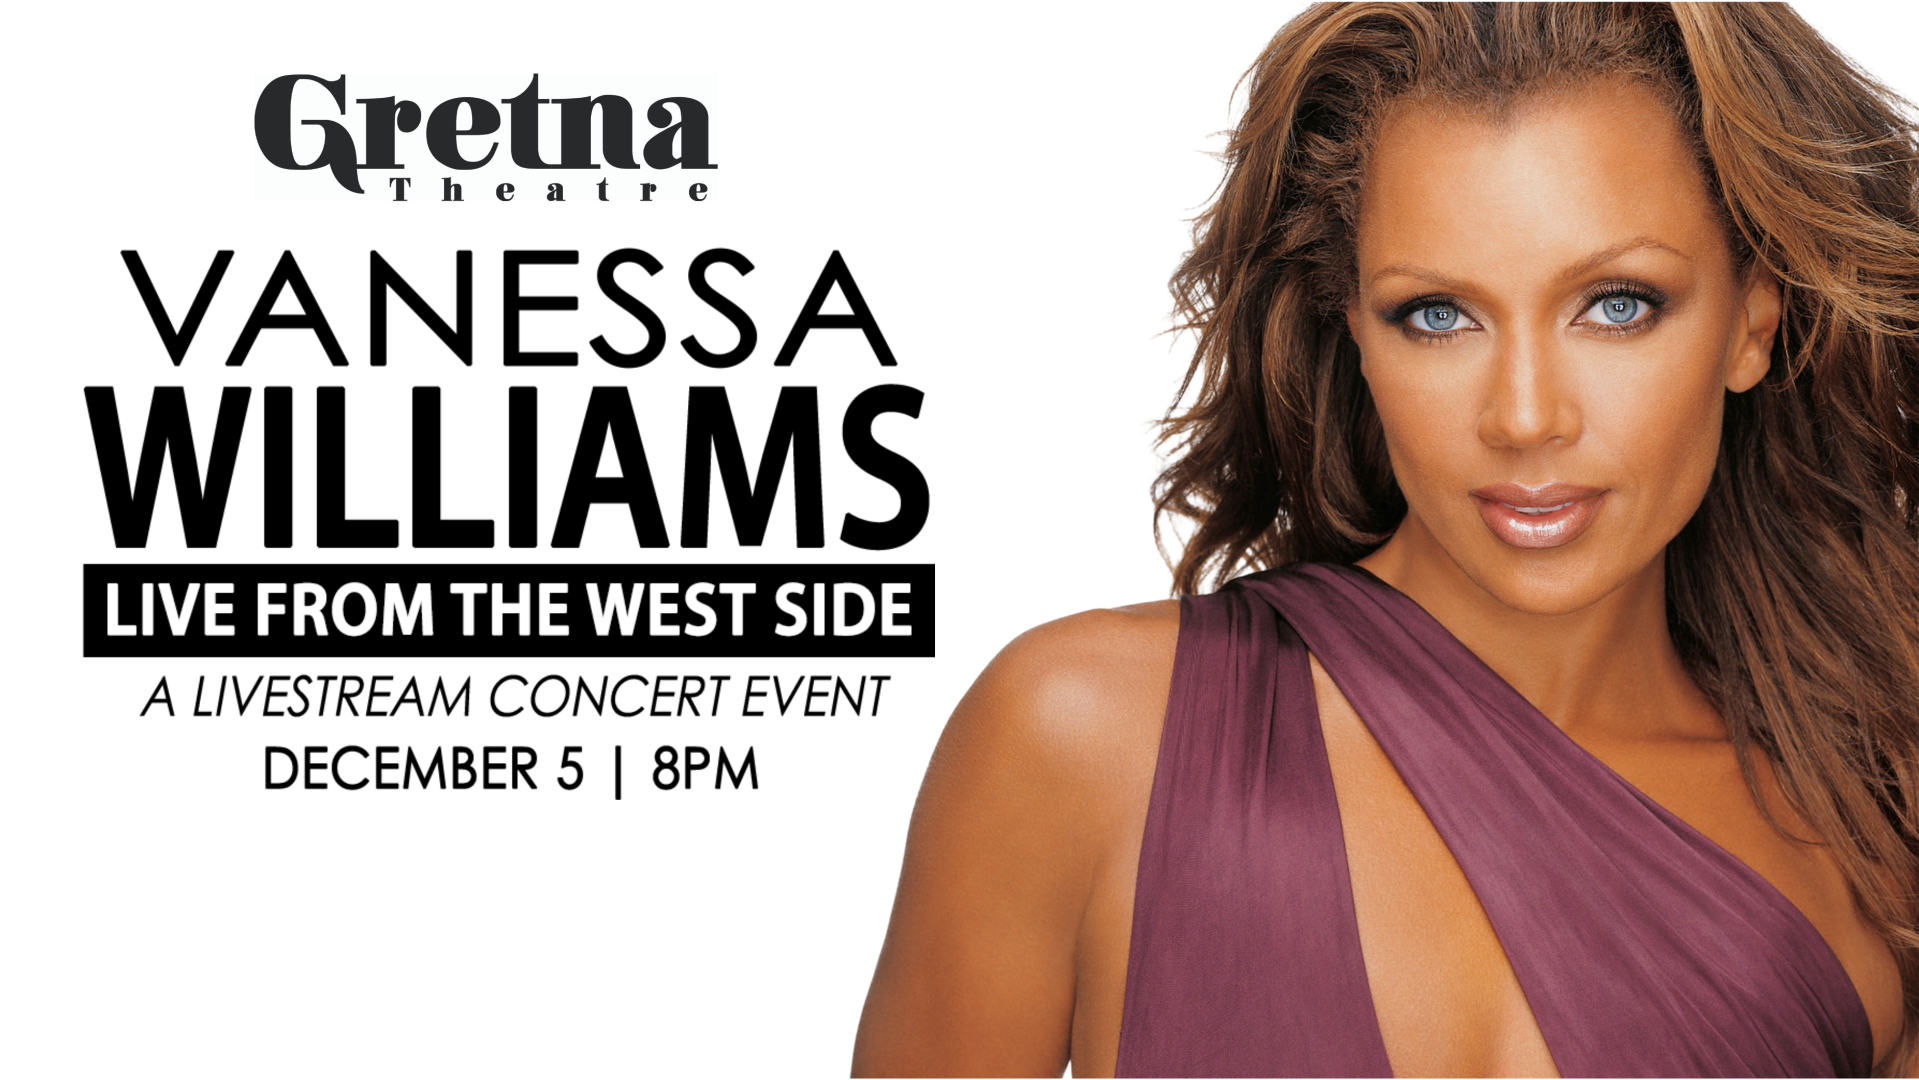 Vanessa Williams livestream concert to benefit Gretna Music, other venues